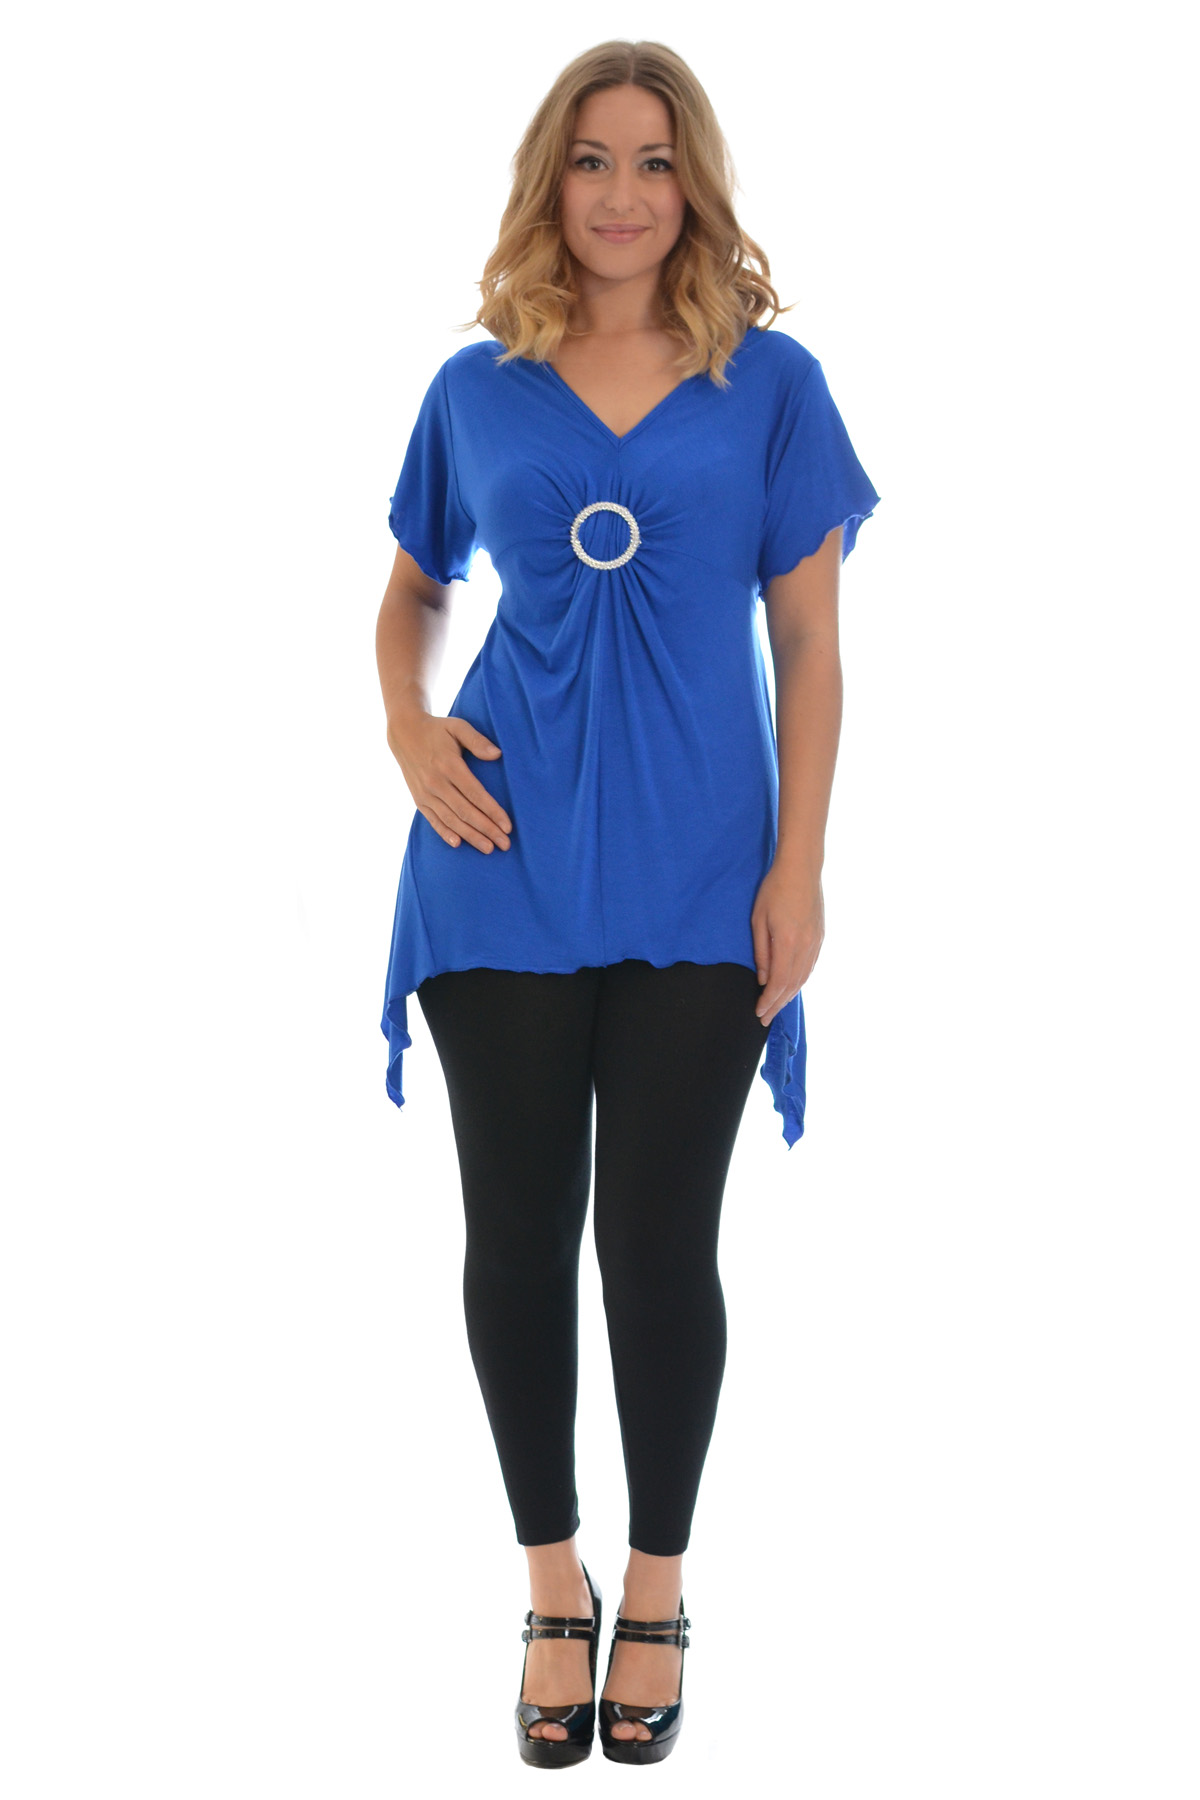 New-Womens-Plus-Size-Top-Ladies-T-Shirt-Buckle-Stud-A-Line-Asymmetric-Nouvelle thumbnail 25